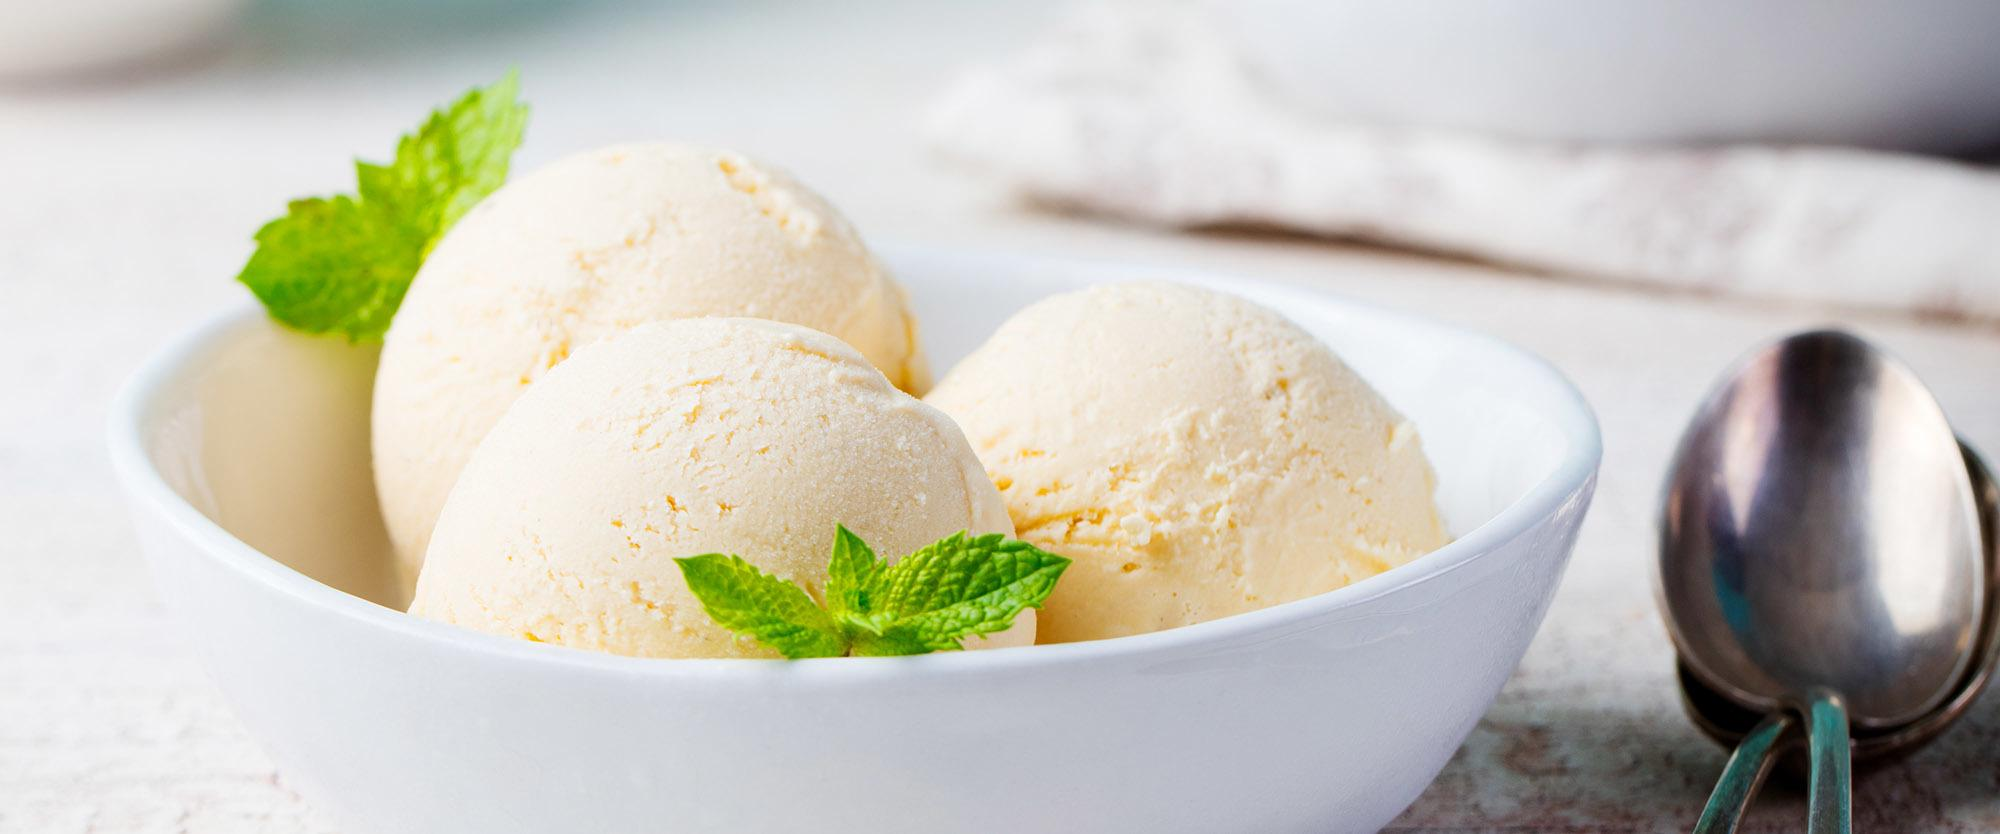 Vanilla Ice Cream with Mint in bowl Organic productVanilla Ice Cream with Mint in bowl Organic productVanilla Ice Cream with Mint in bowl Organic product